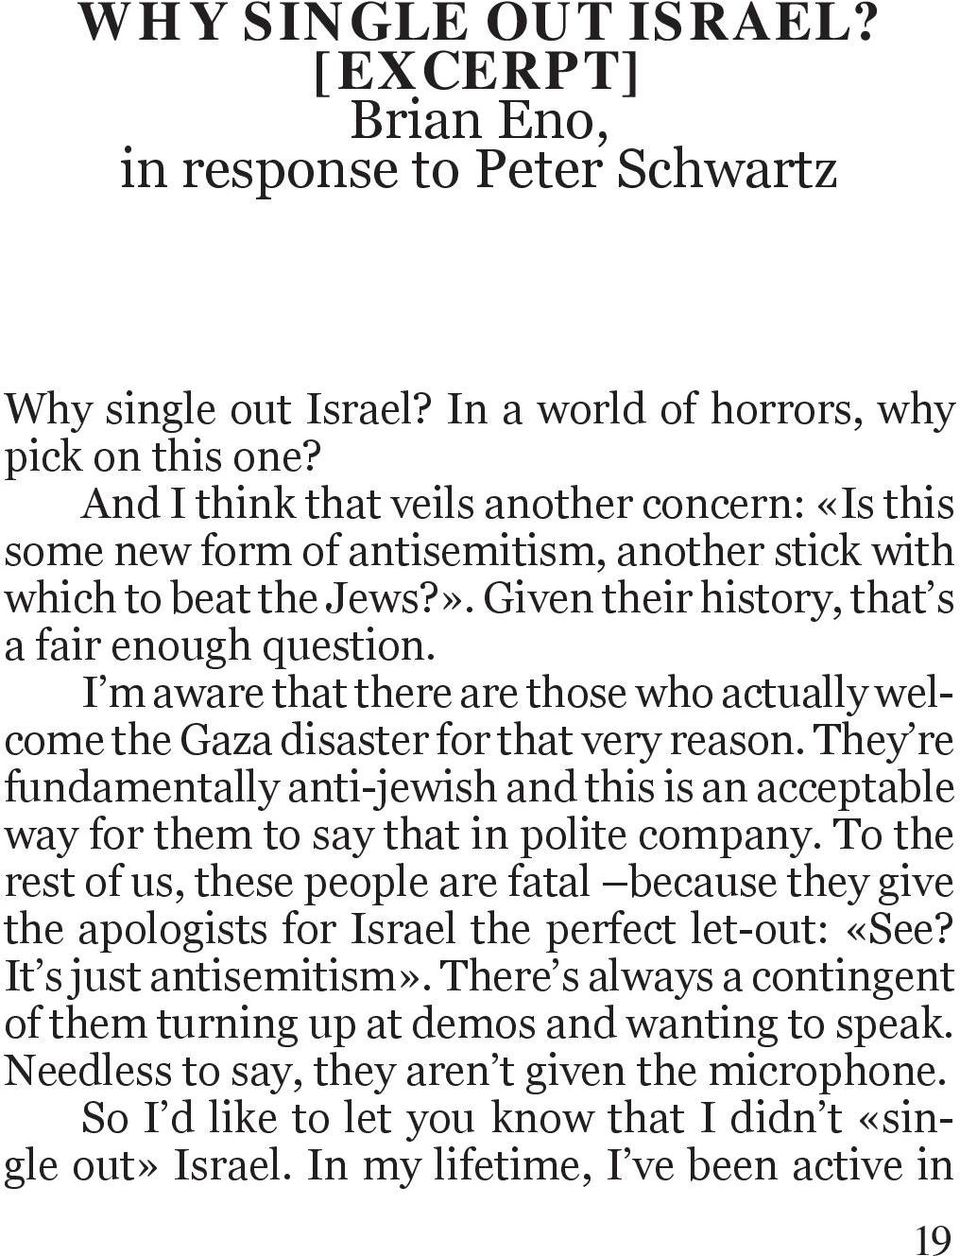 I m aware that there are those who actually welcome the Gaza disaster for that very reason. They re fundamentally anti-jewish and this is an acceptable way for them to say that in polite company.